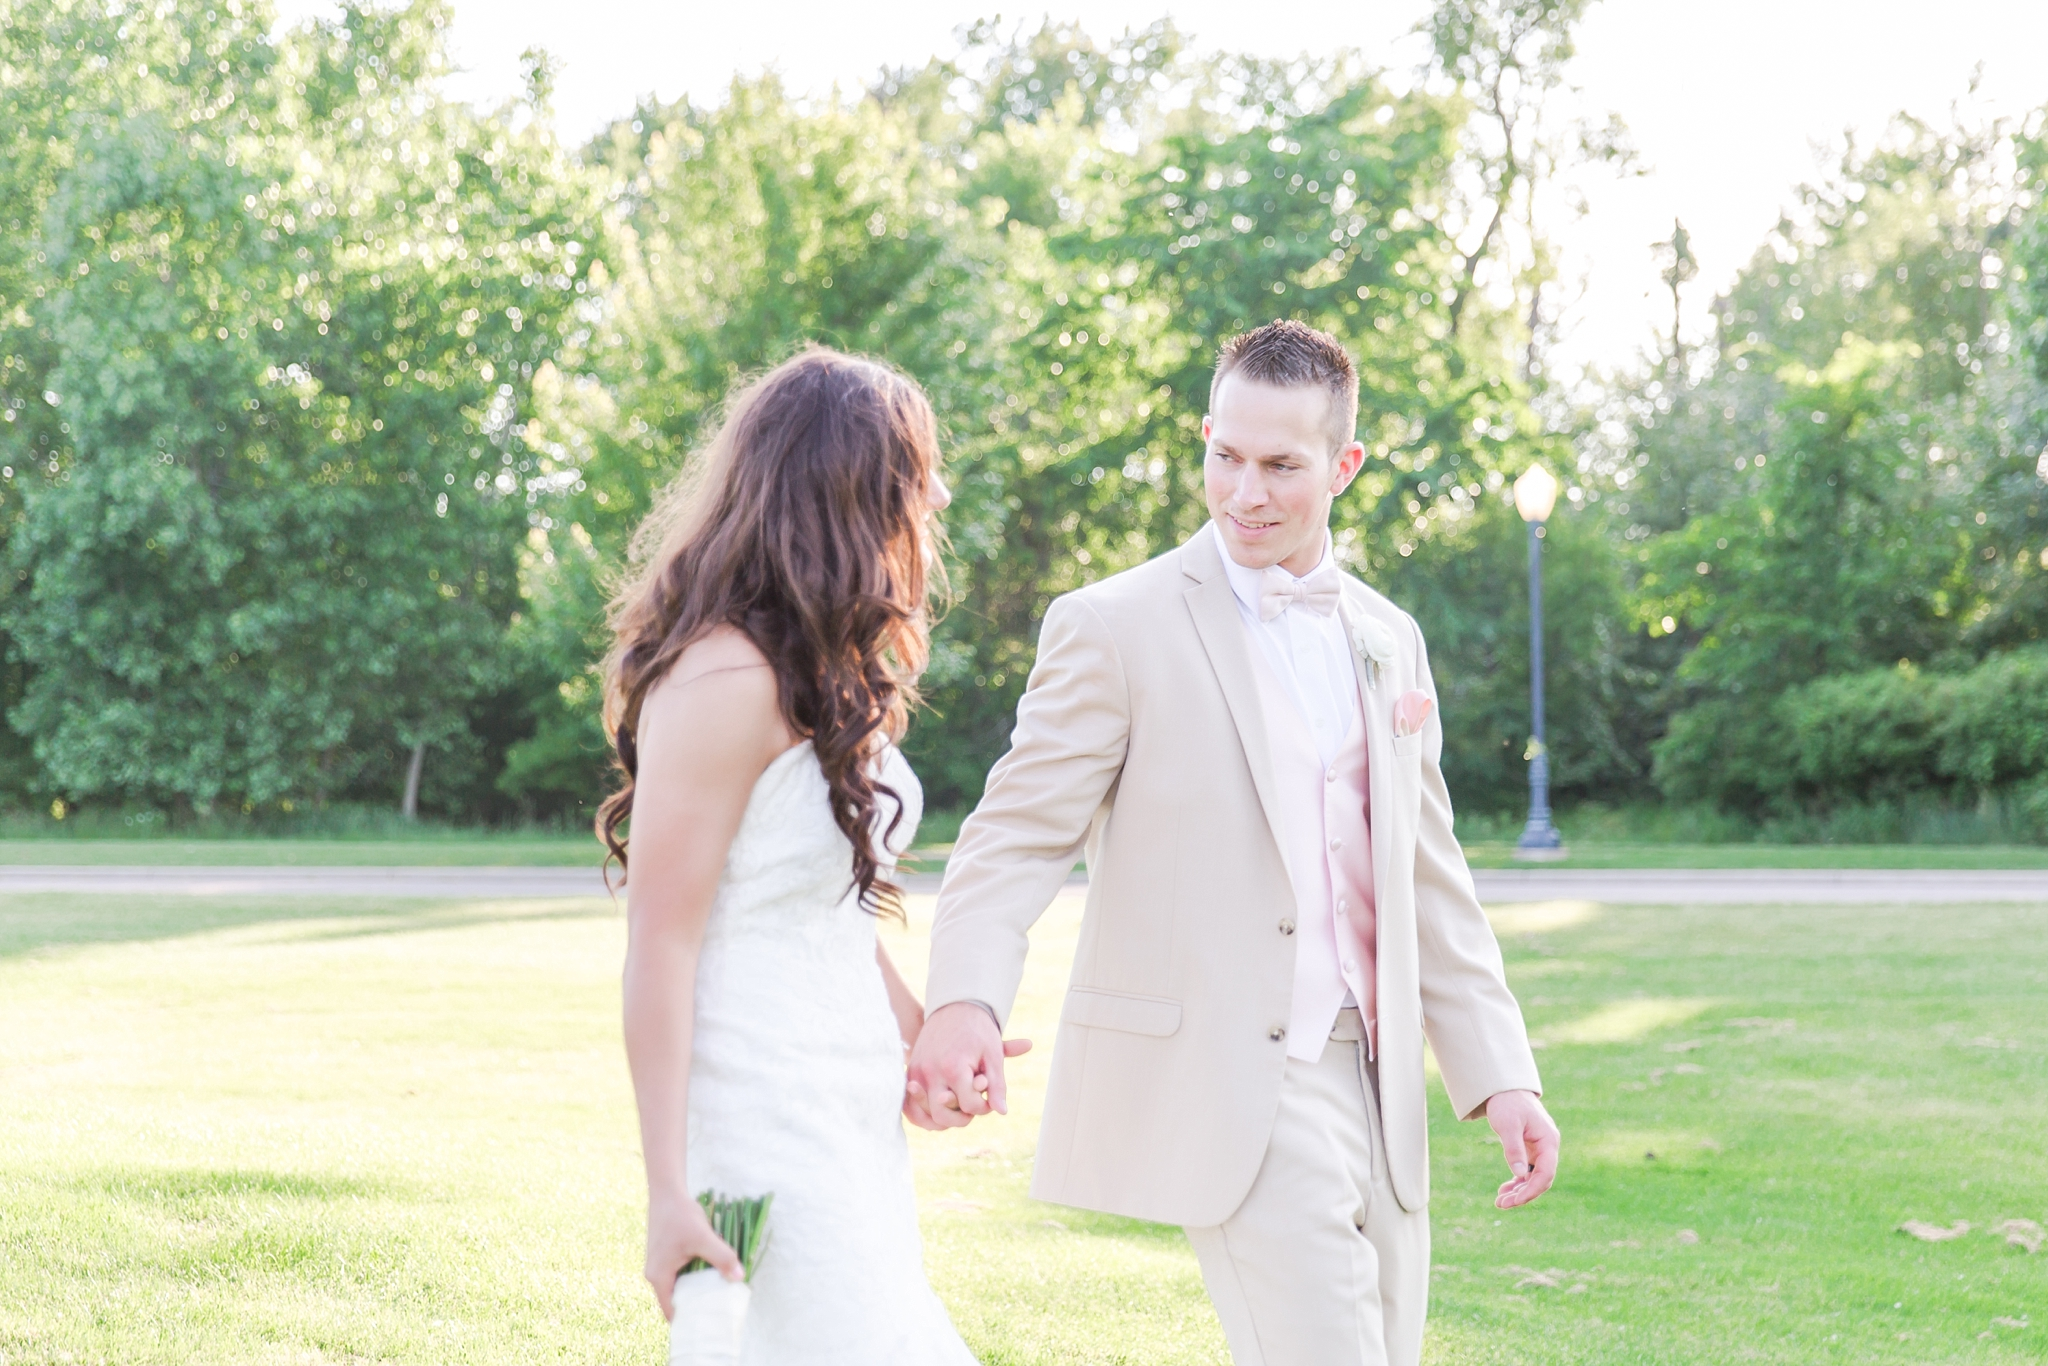 candid-timeless-wedding-photos-at-the-captains-club-in-grand-blanc-michigan-by-courtney-carolyn-photography_0074.jpg